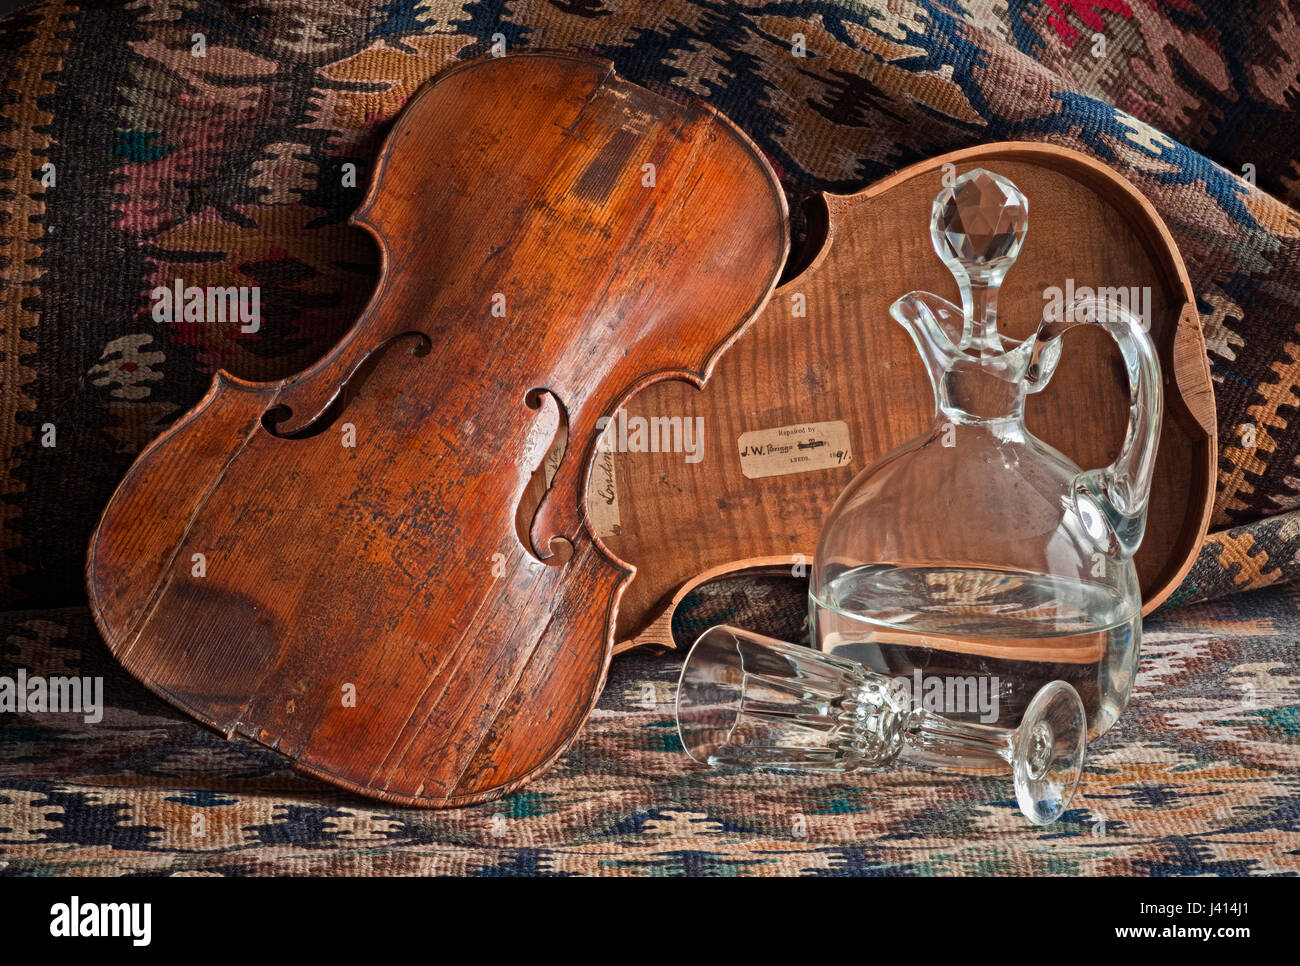 Vanitas still life, old violin in pieces, spilt glass and decanter, Persian kilim. Focus-stacked image. Stock Photo